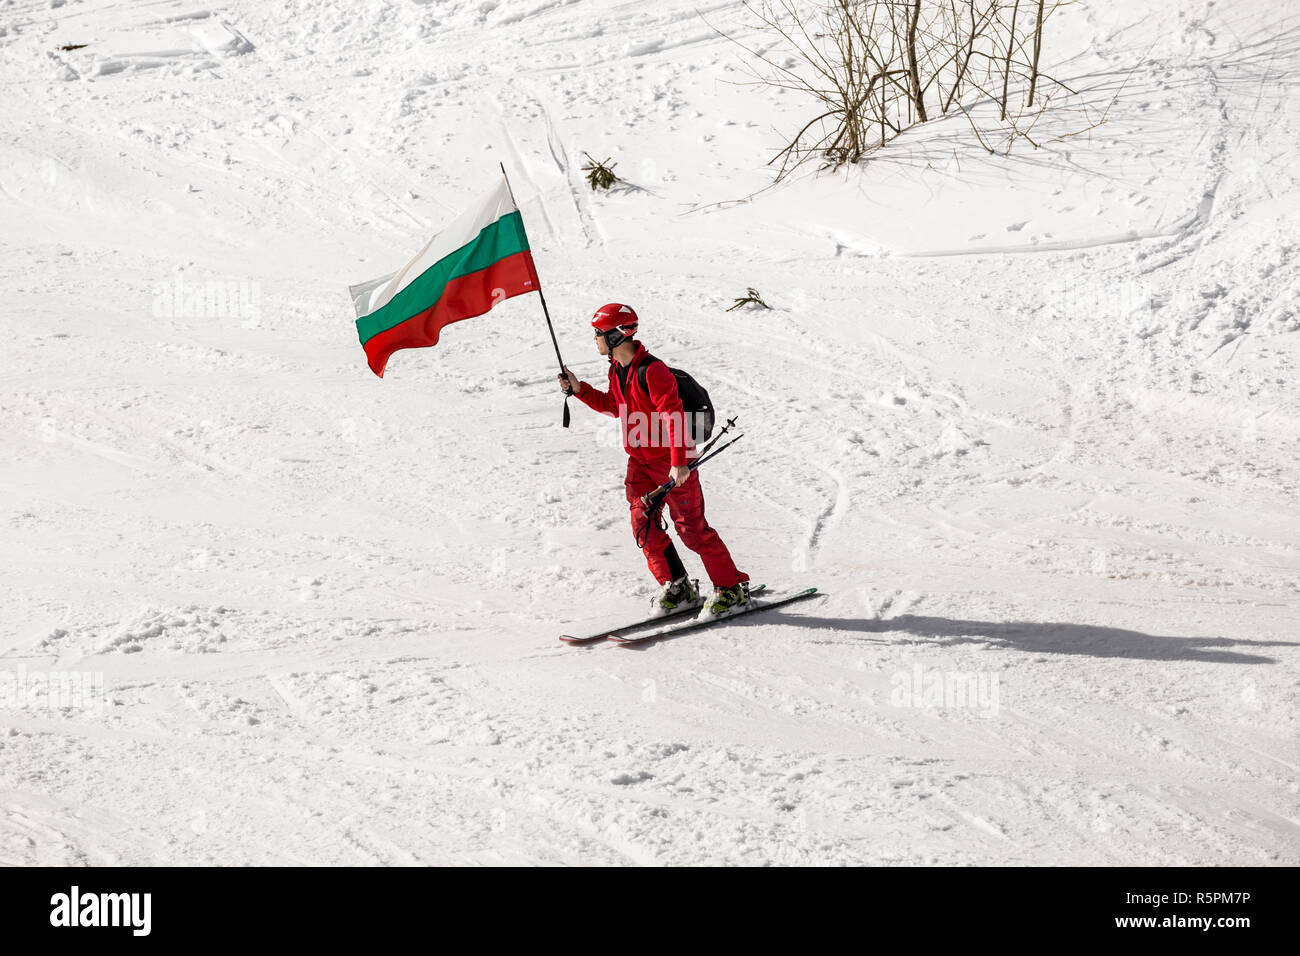 PAMPOROVO, BULGARIA - MARCH 03, 2017 - Skiing with Bulgarian flags at Pamporovo, Bulgaria. People dressed with traditional bulgarian clothes skiing wi - Stock Image